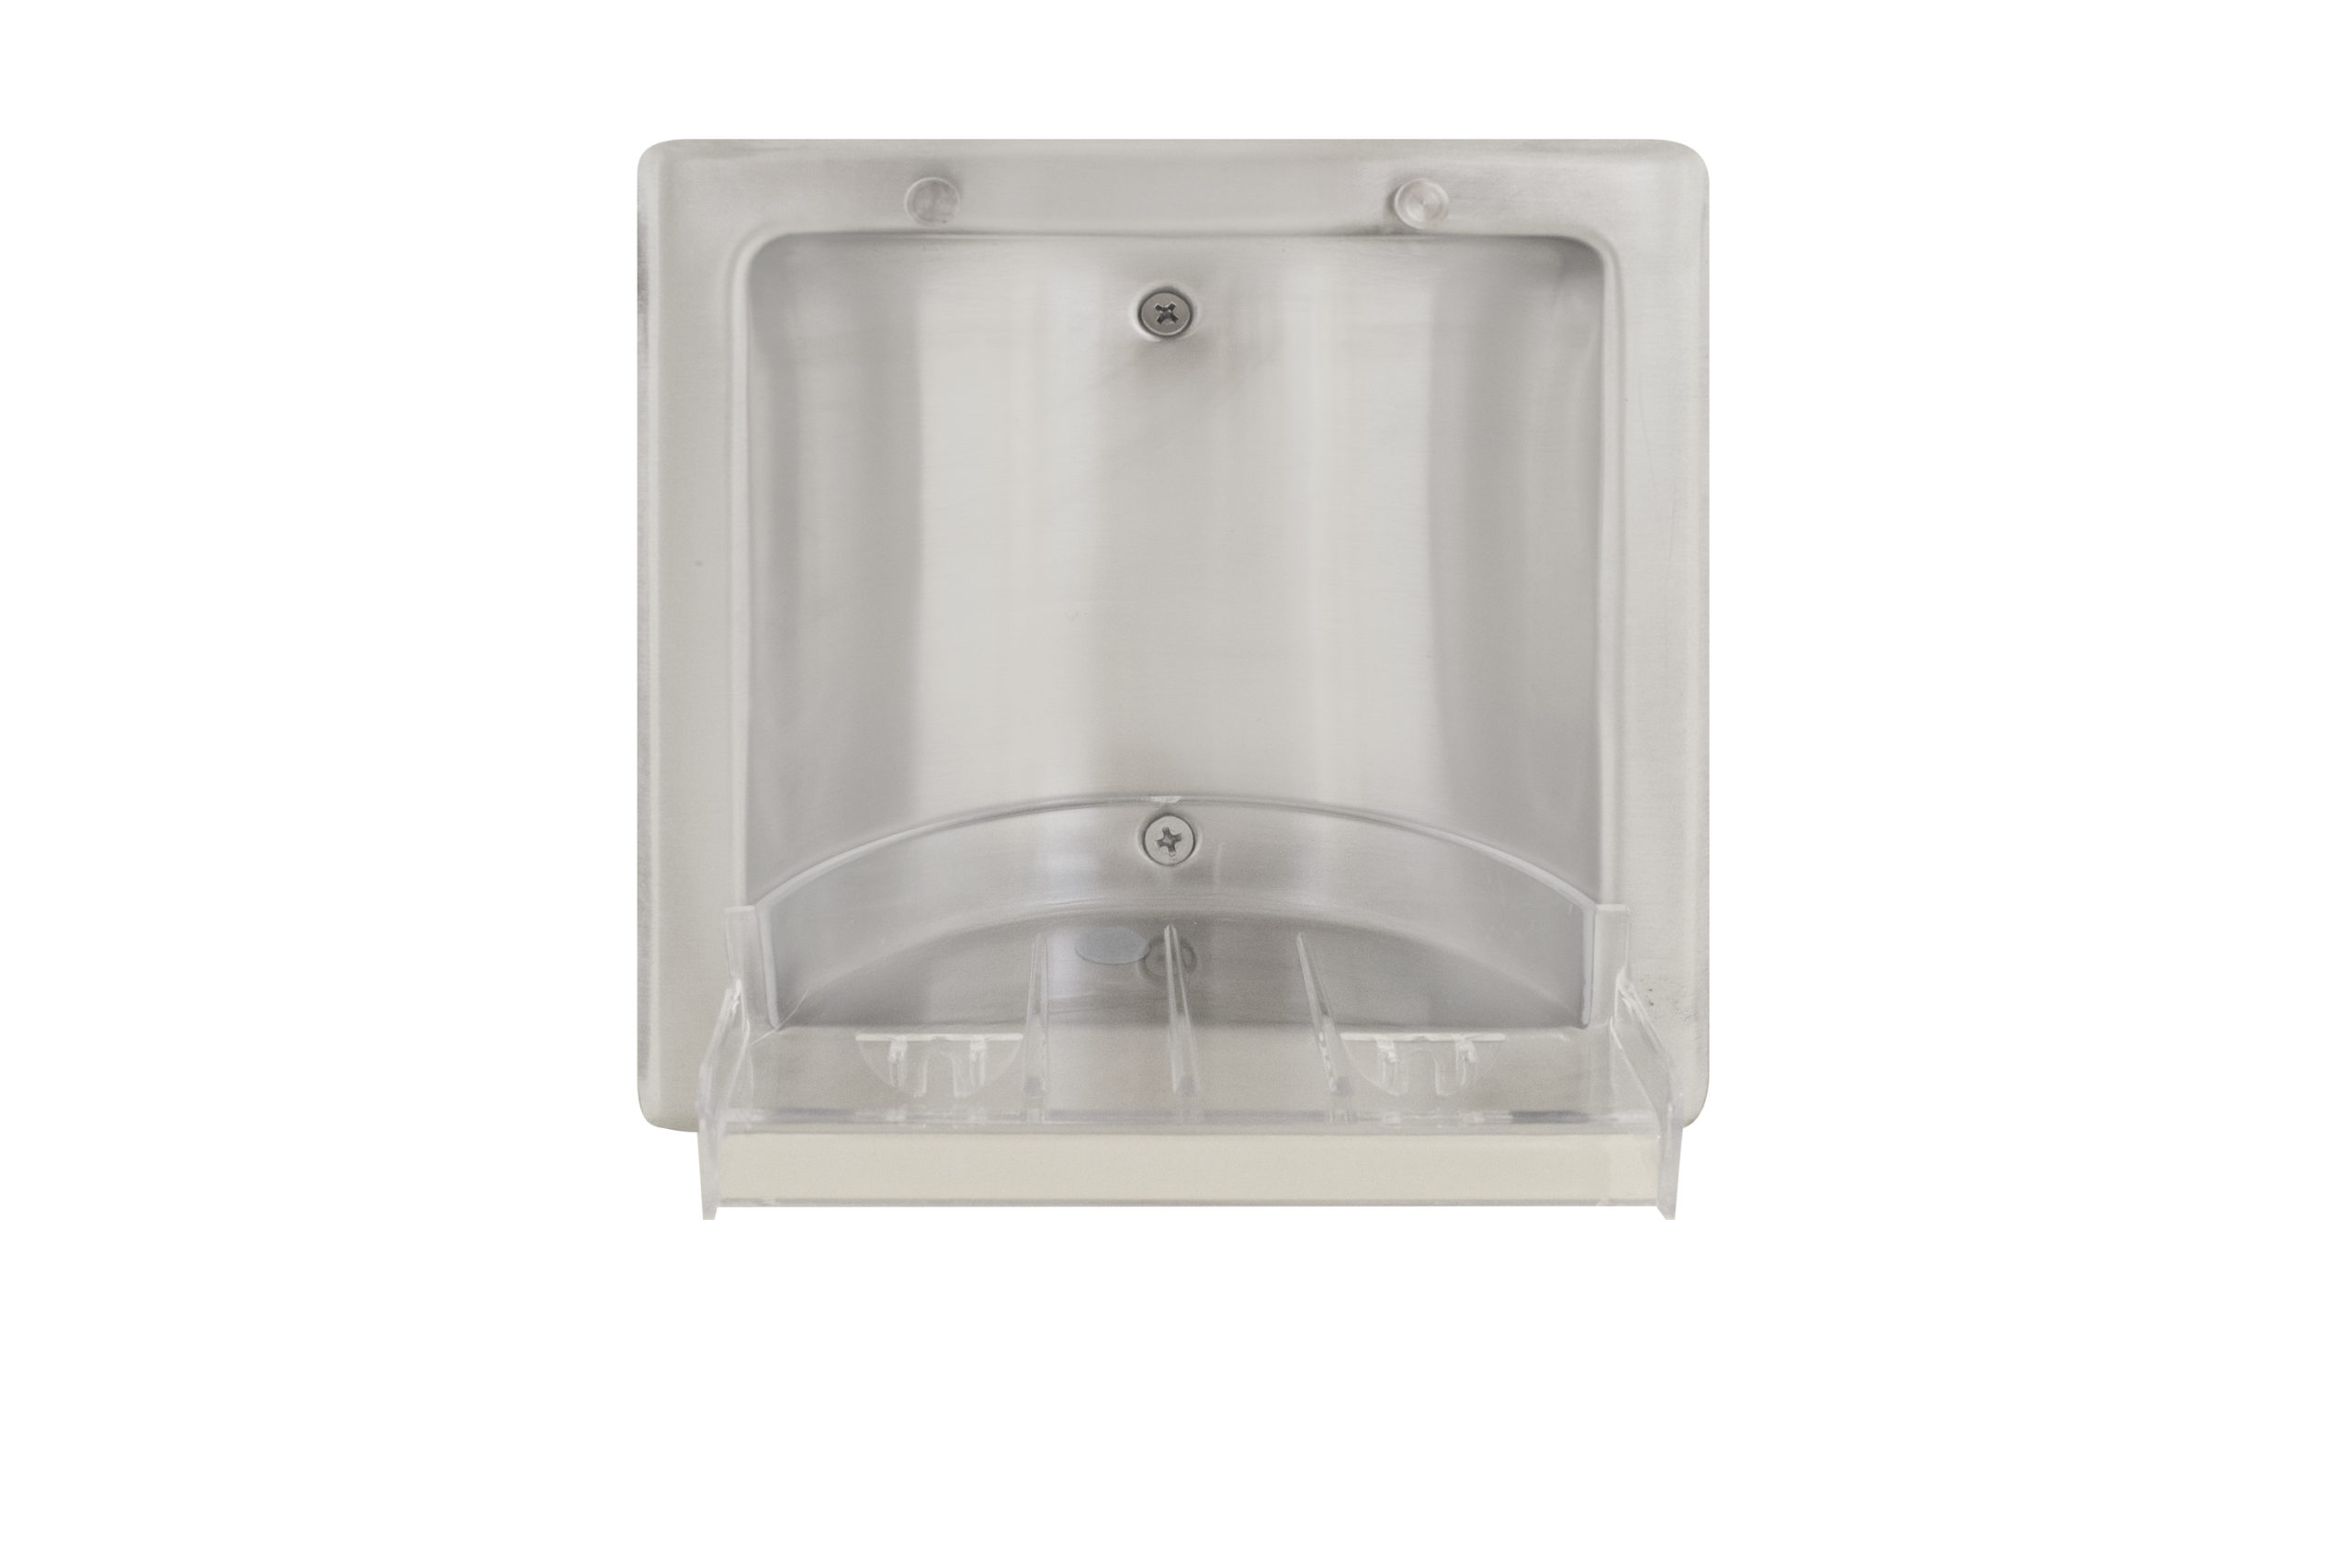 Bradley 9352 Recessed Stainless Steel Soap Dish - Bright Polish